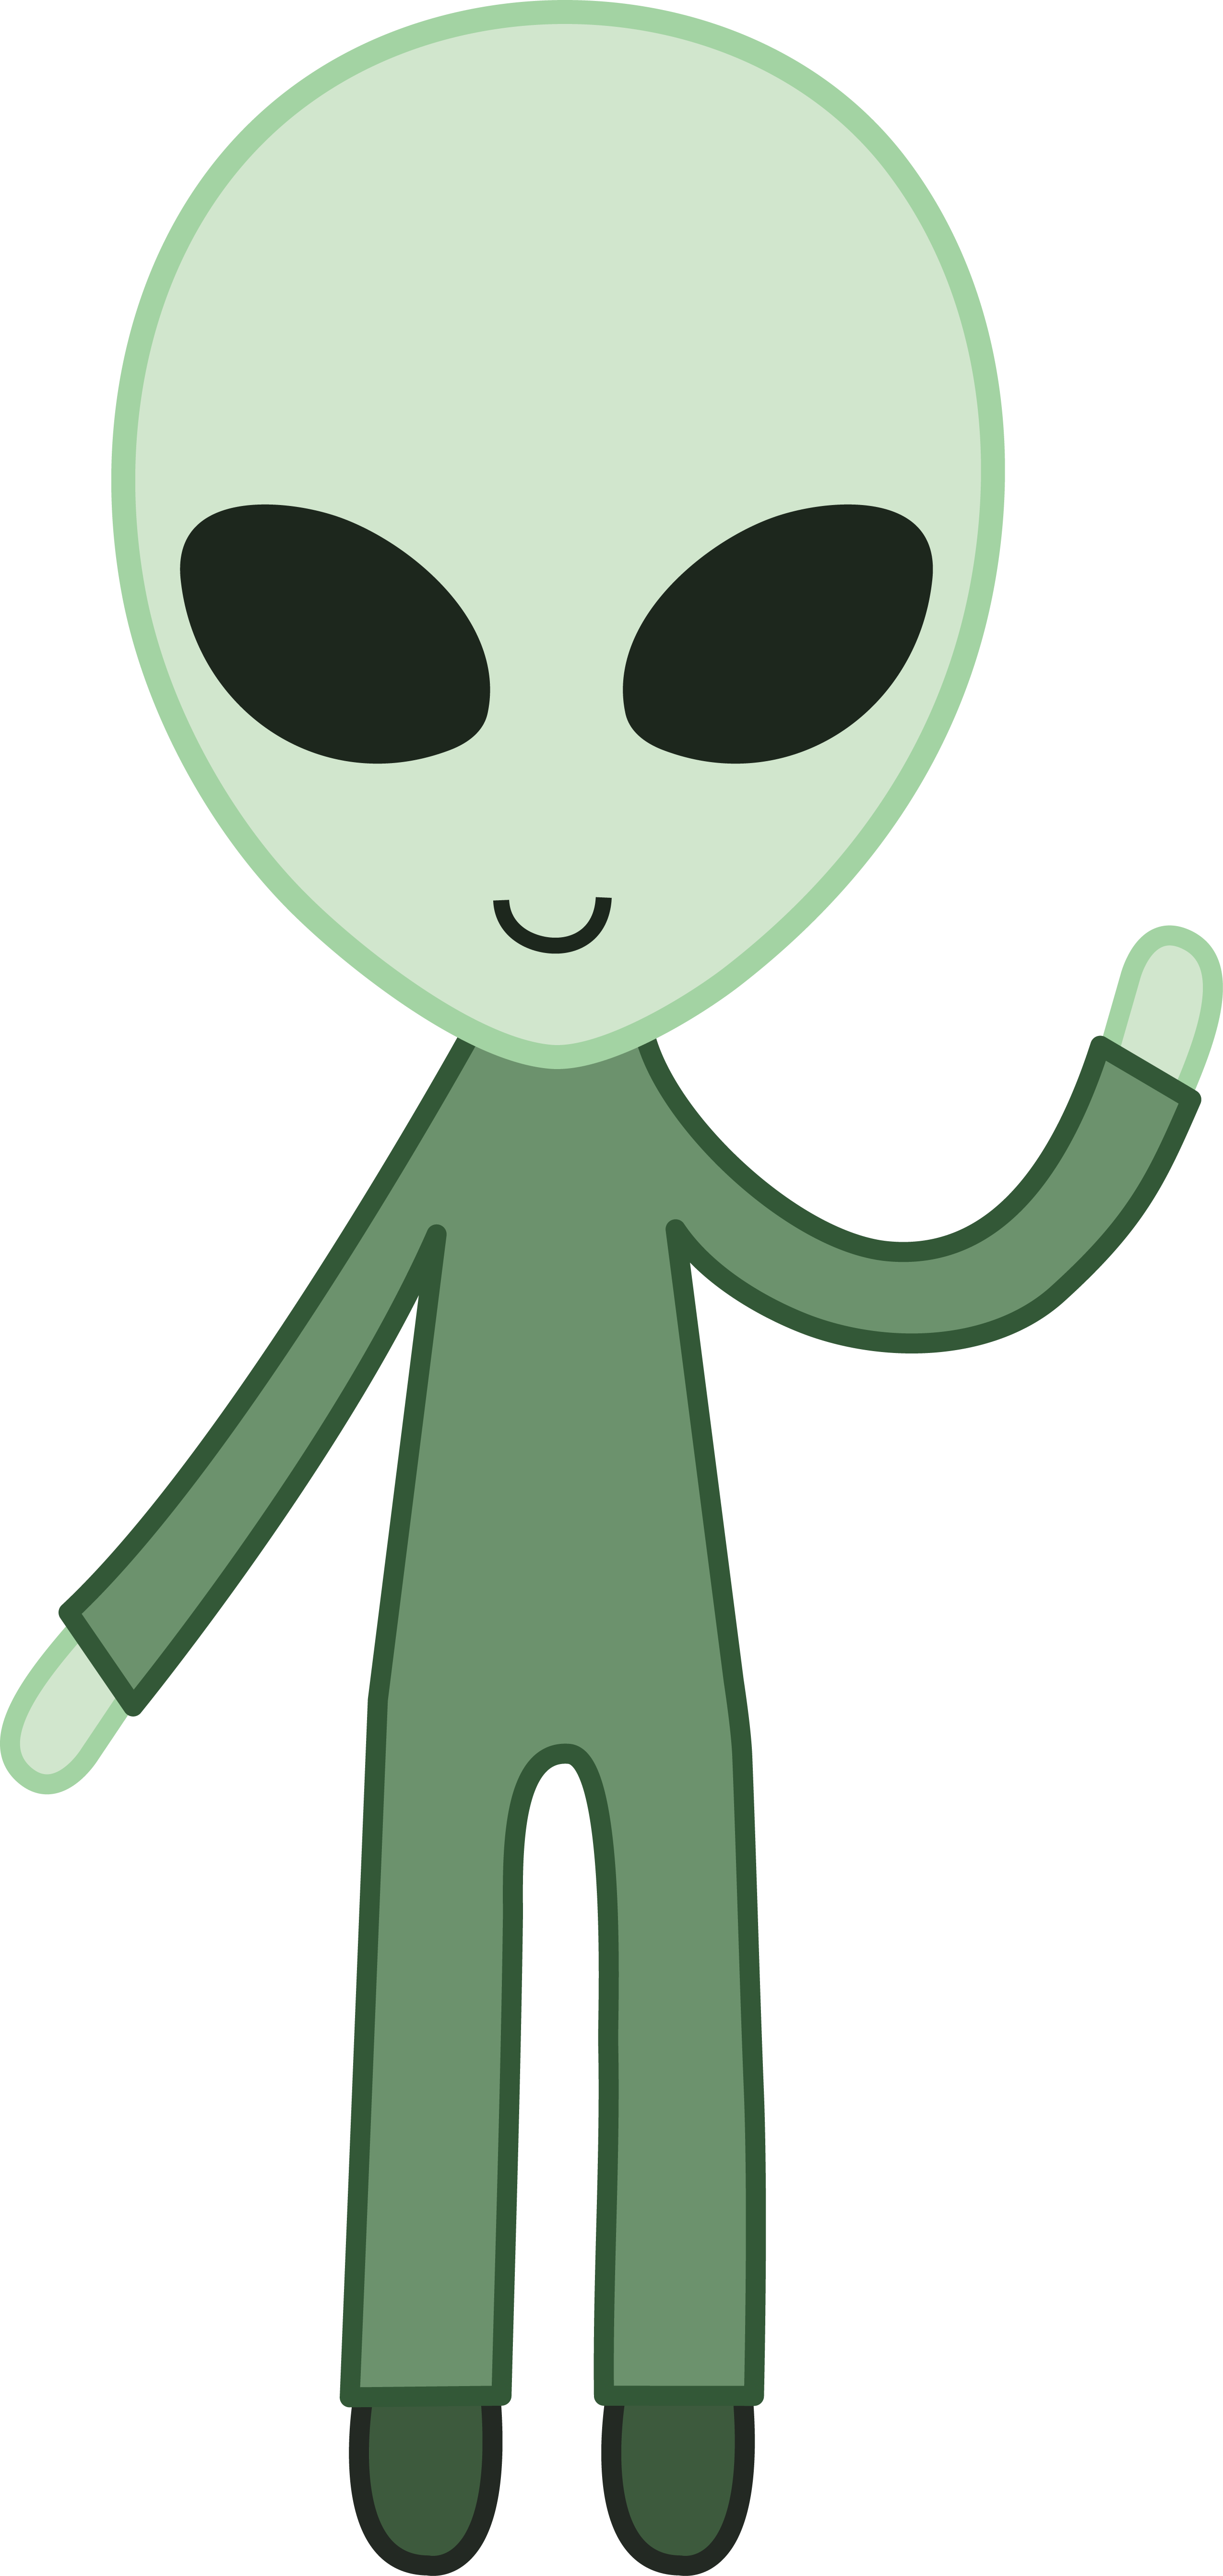 Friendly Green Space Alien.